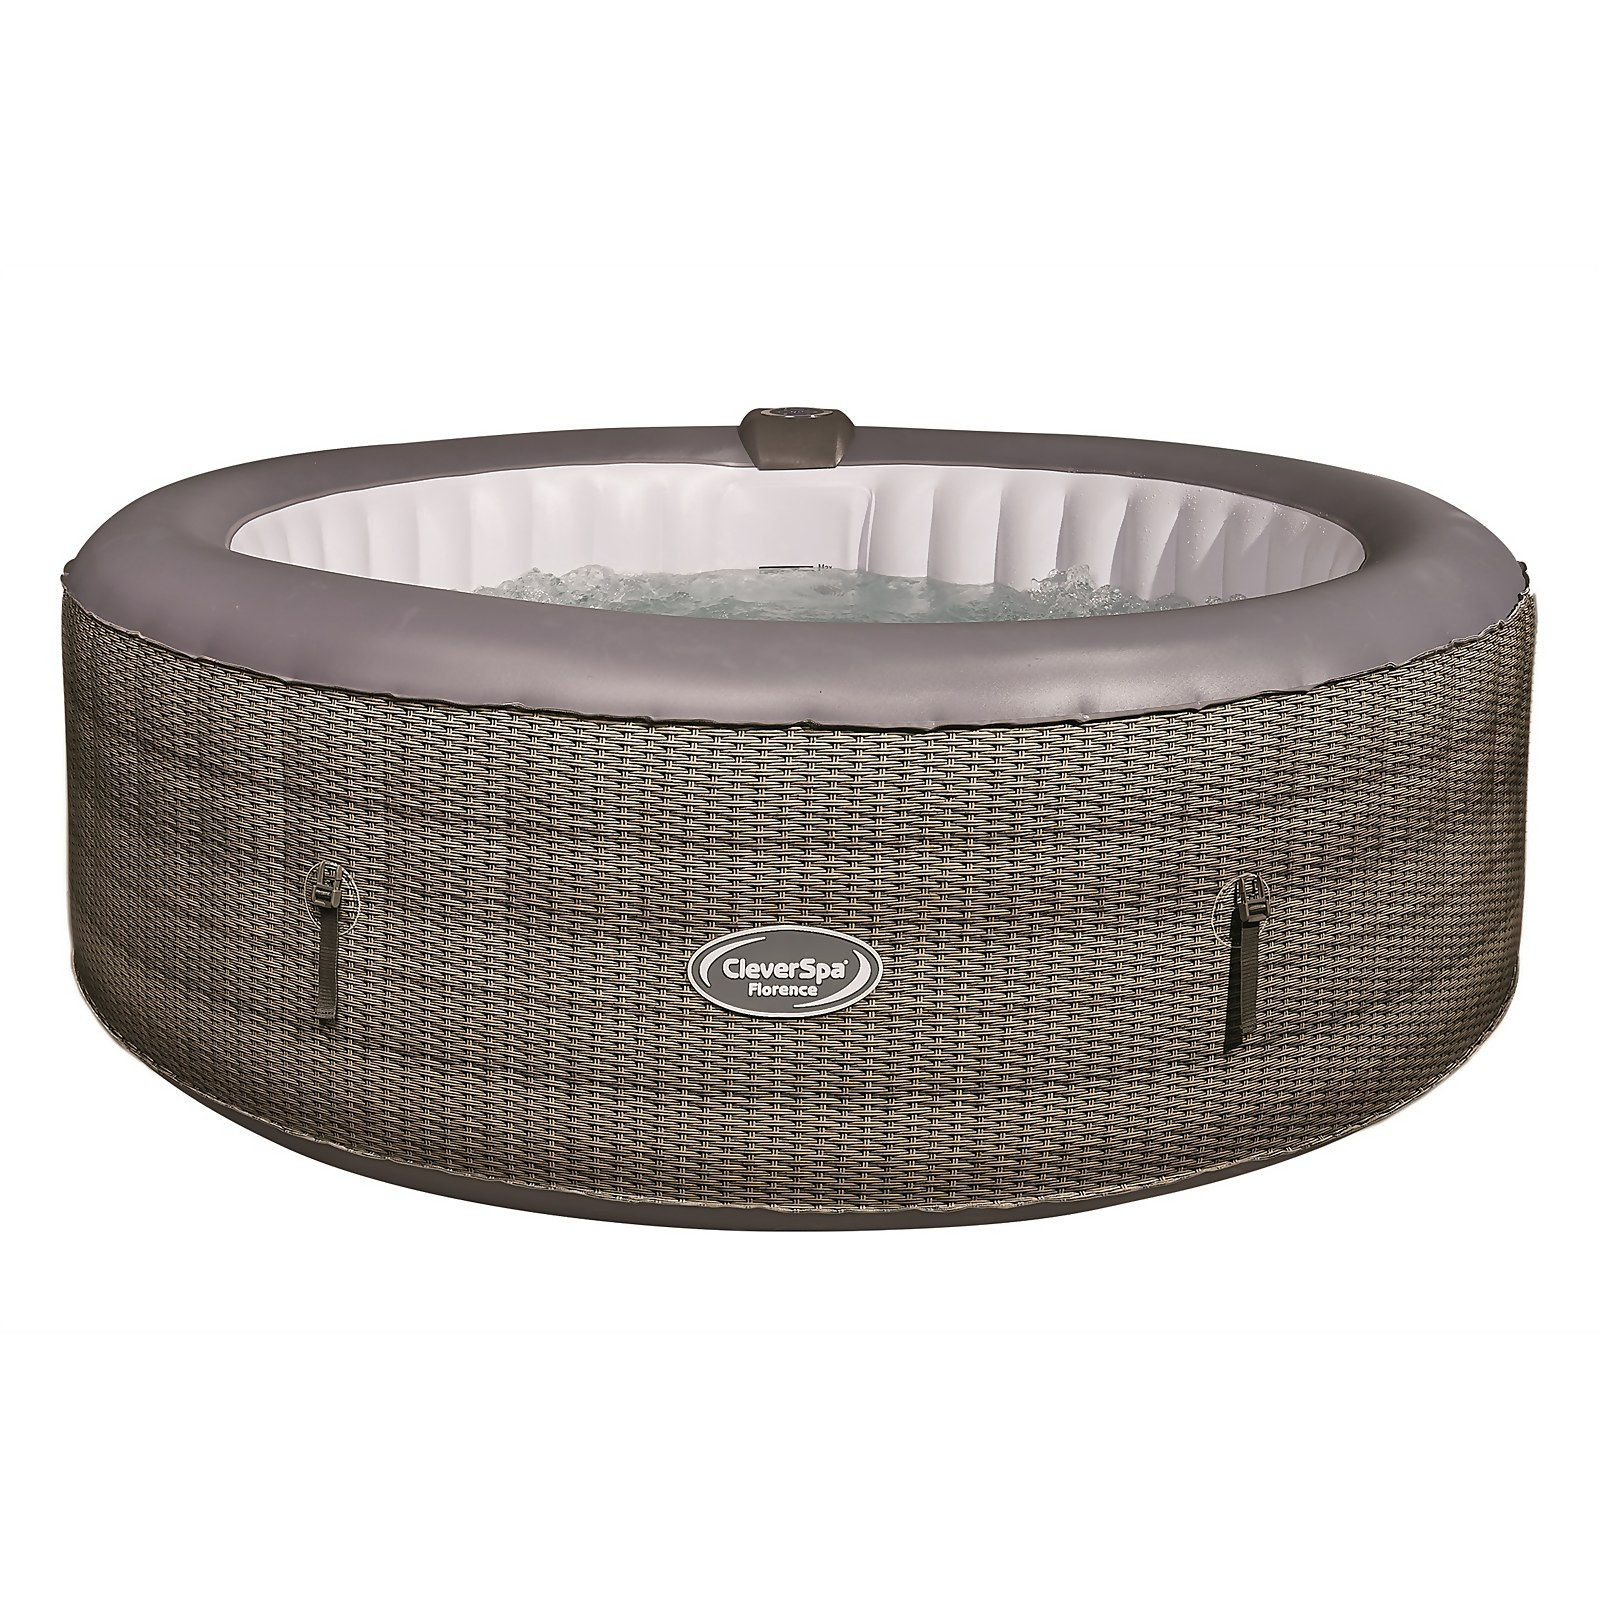 CleverSpa Florence Hot Tub (6 Person)